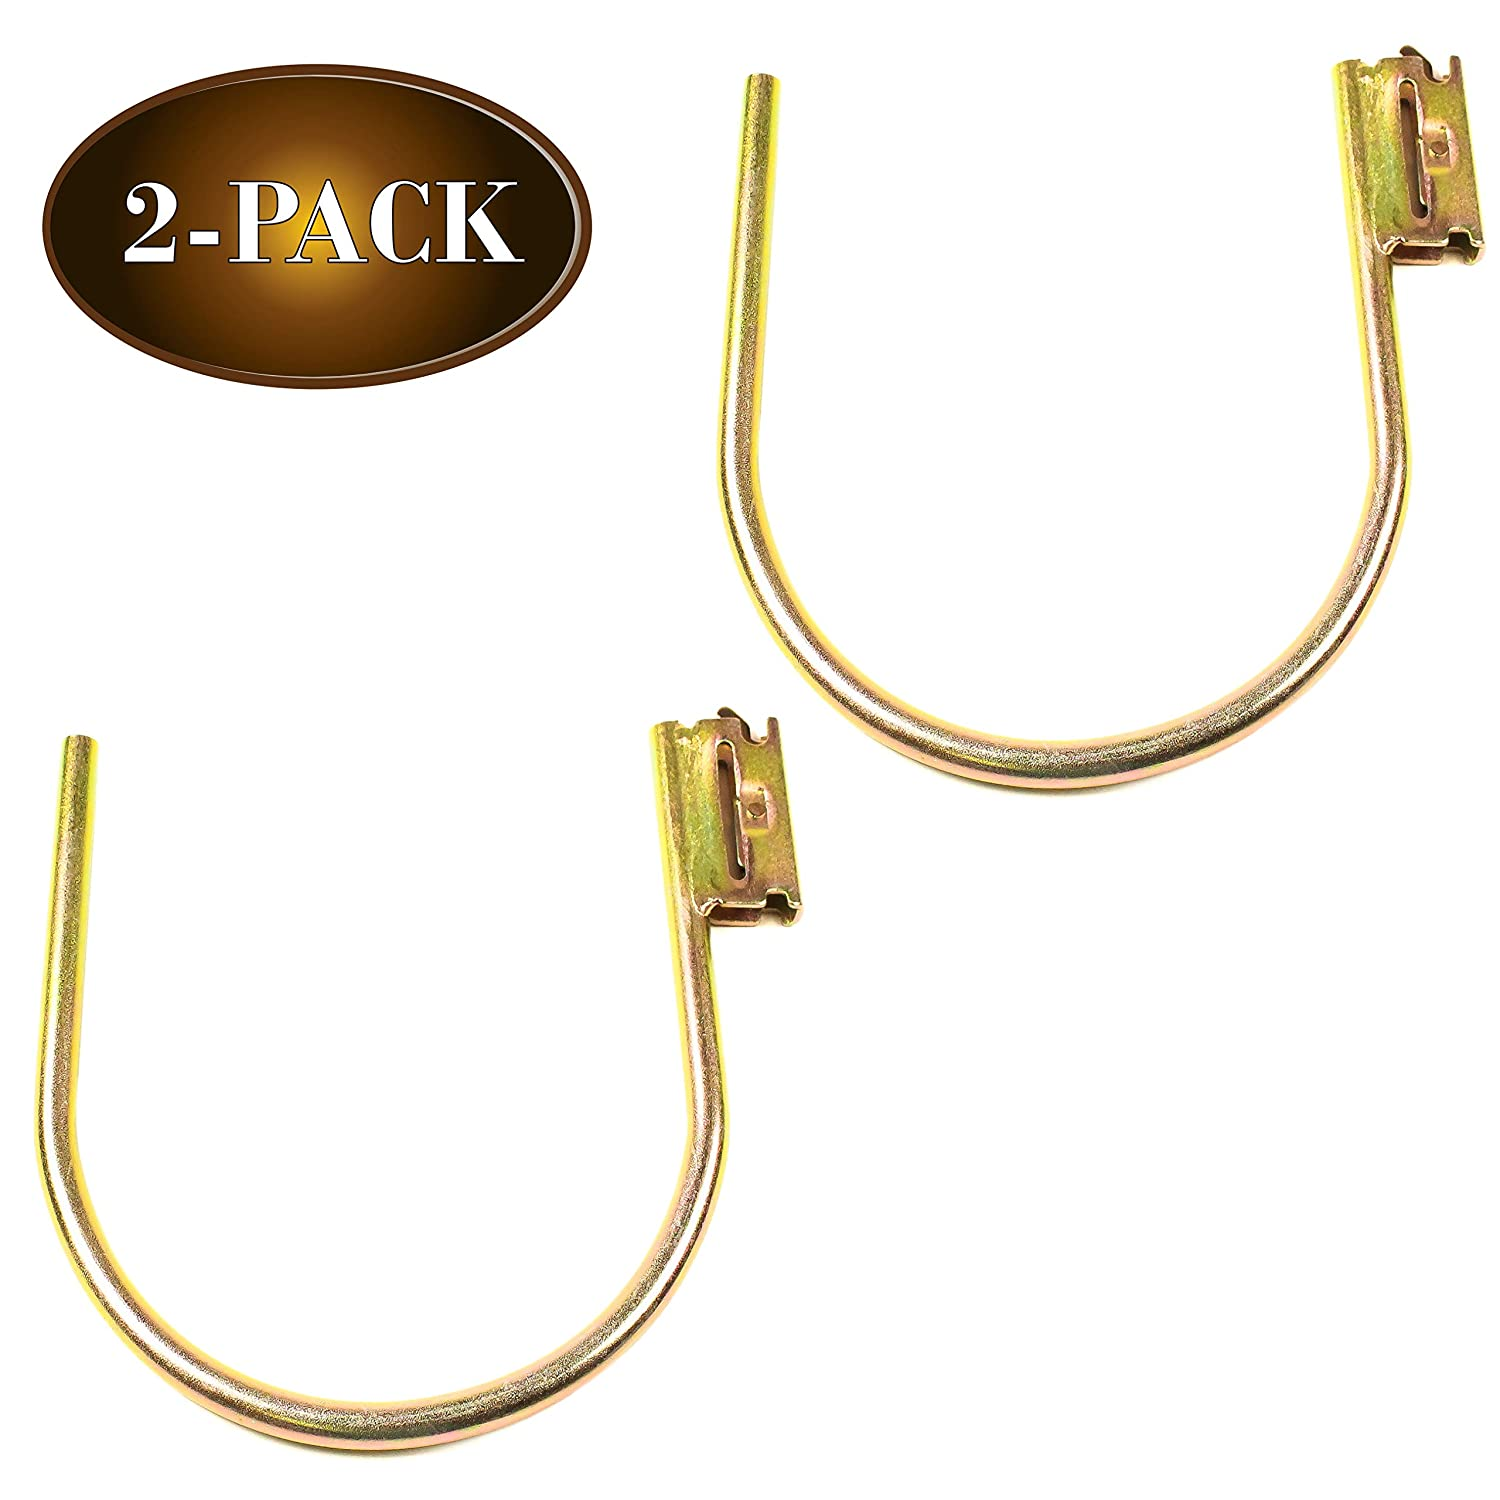 DC Cargo Mall E-Track Large 7' J Hook Tie Down Accessory (2 Pack) for Enclosed Trailer/RV for Helmets, Ropes, Motorcycle Jackets, Pipes, Hoses and Cables